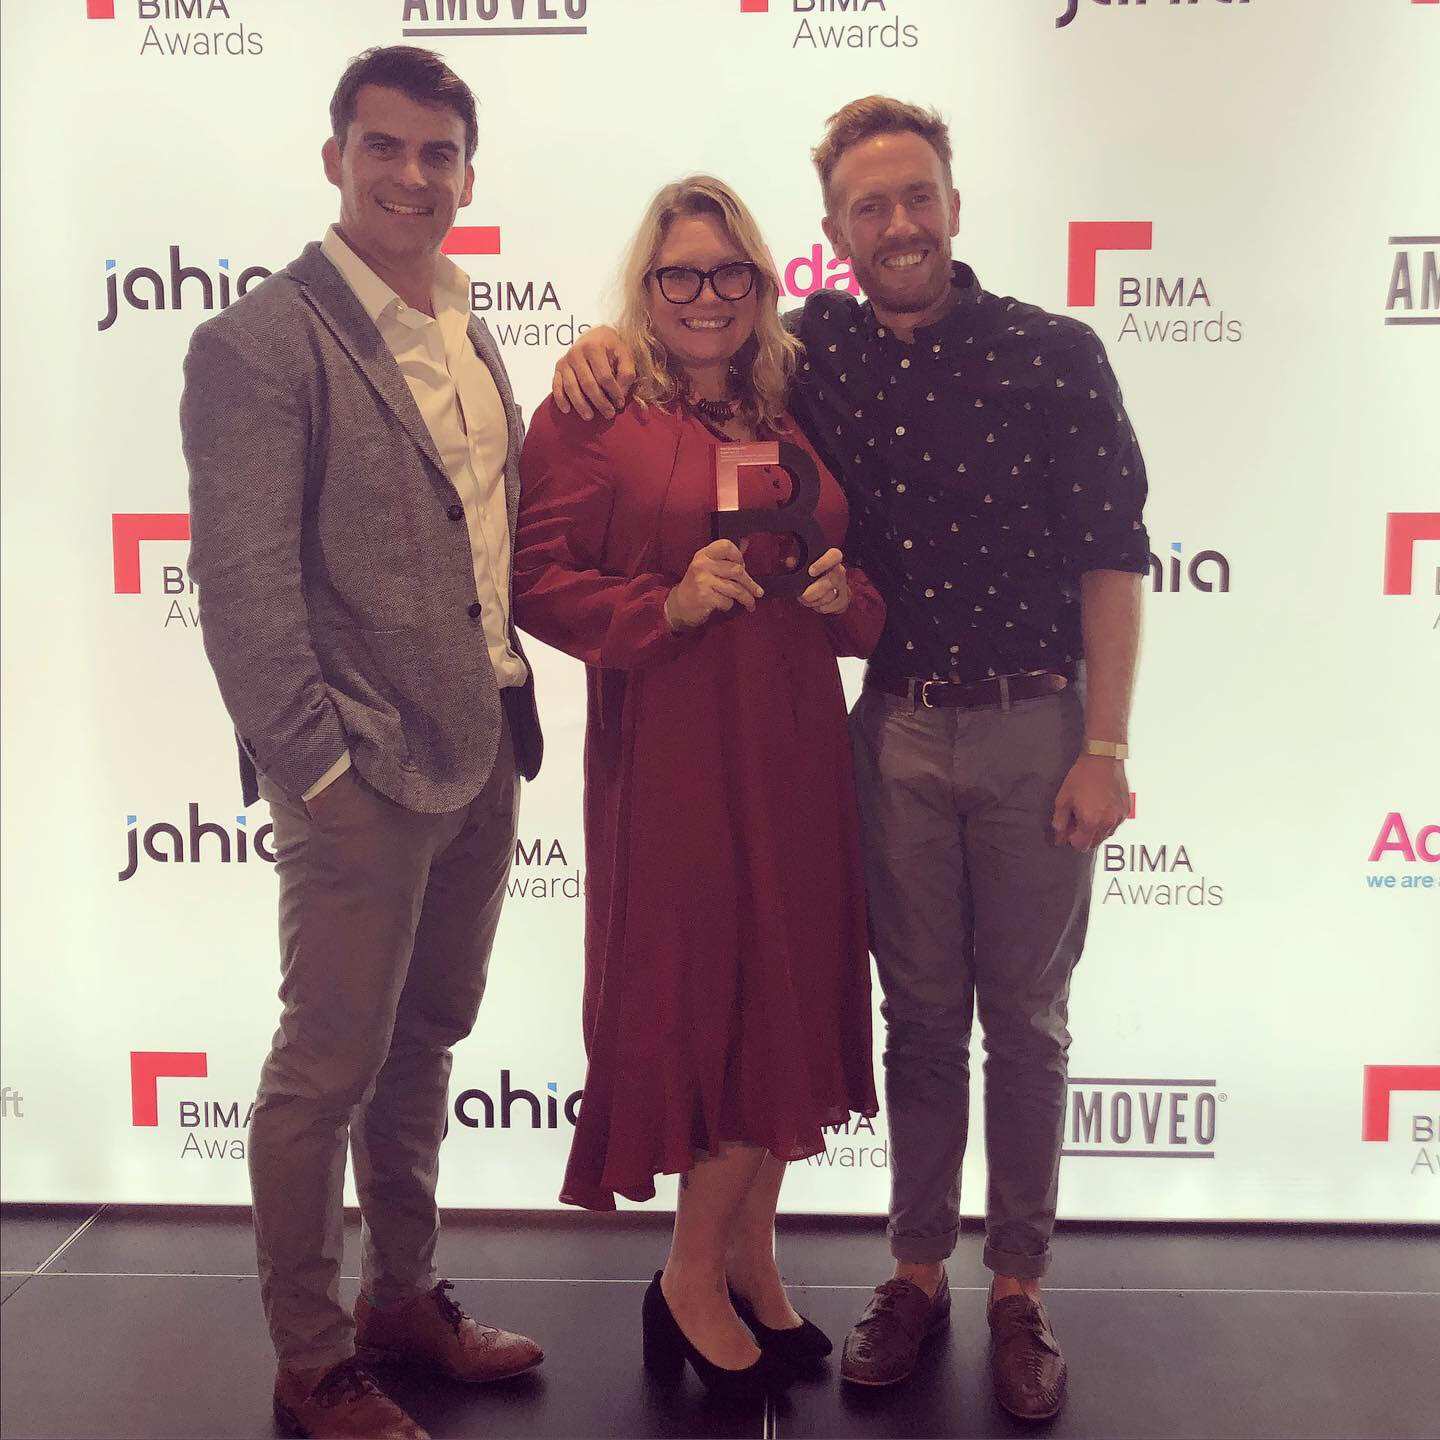 Shane, Victoria and Chris celebrate our BIMA award at the Institute of Engineering and Technology in London.